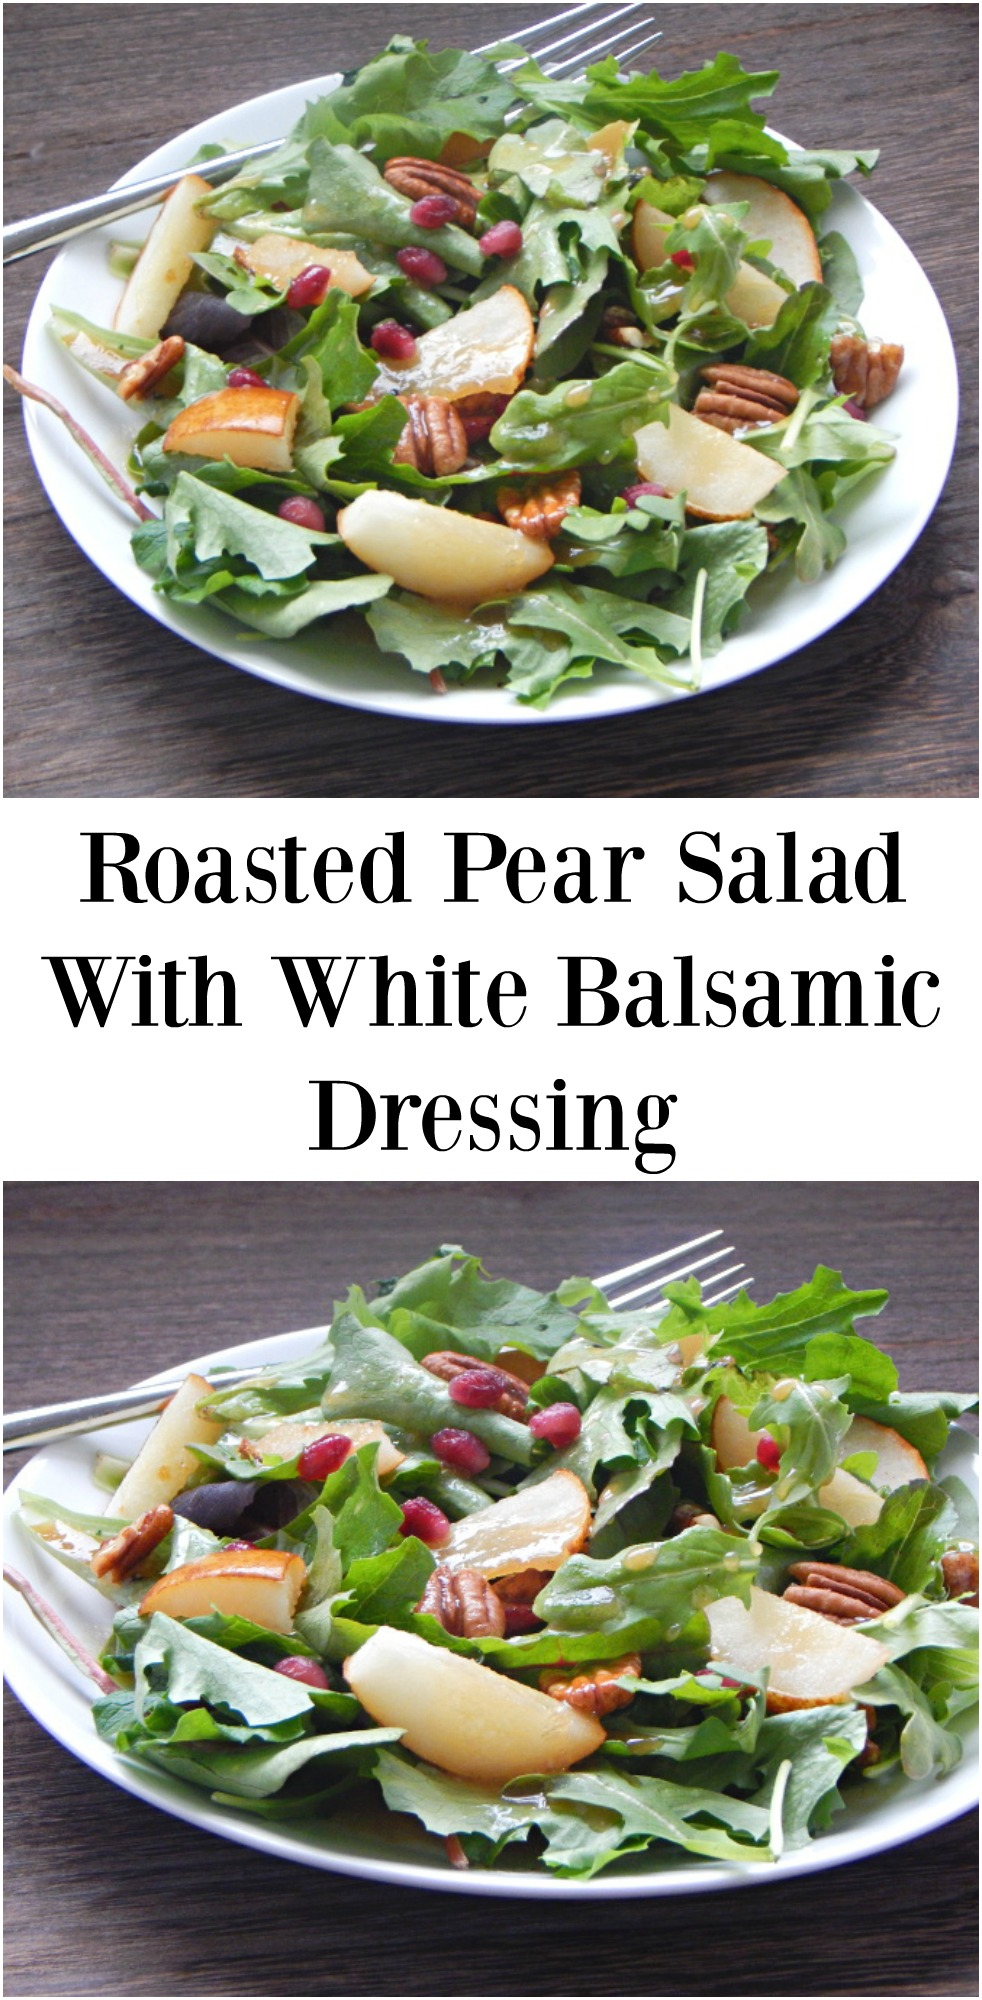 Roasted Pear Salad With White Balsamic Dressing